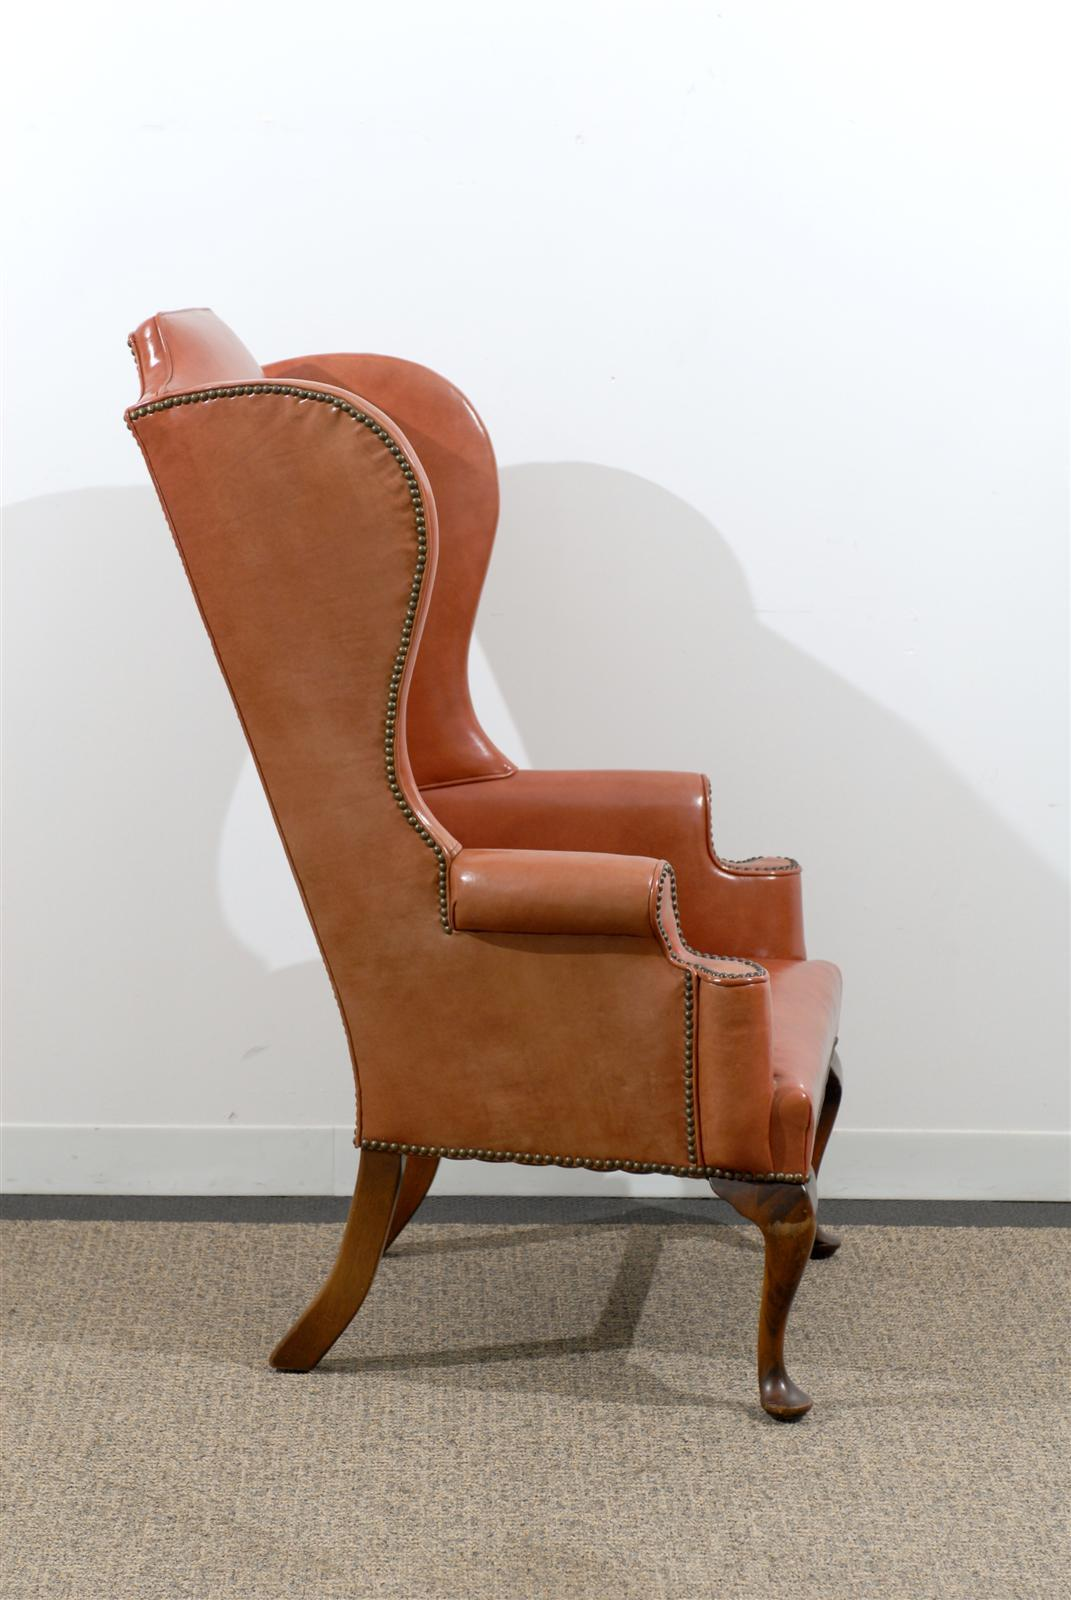 queen anne wingback chair leather dining chairs at marshalls style wing in burnished orange